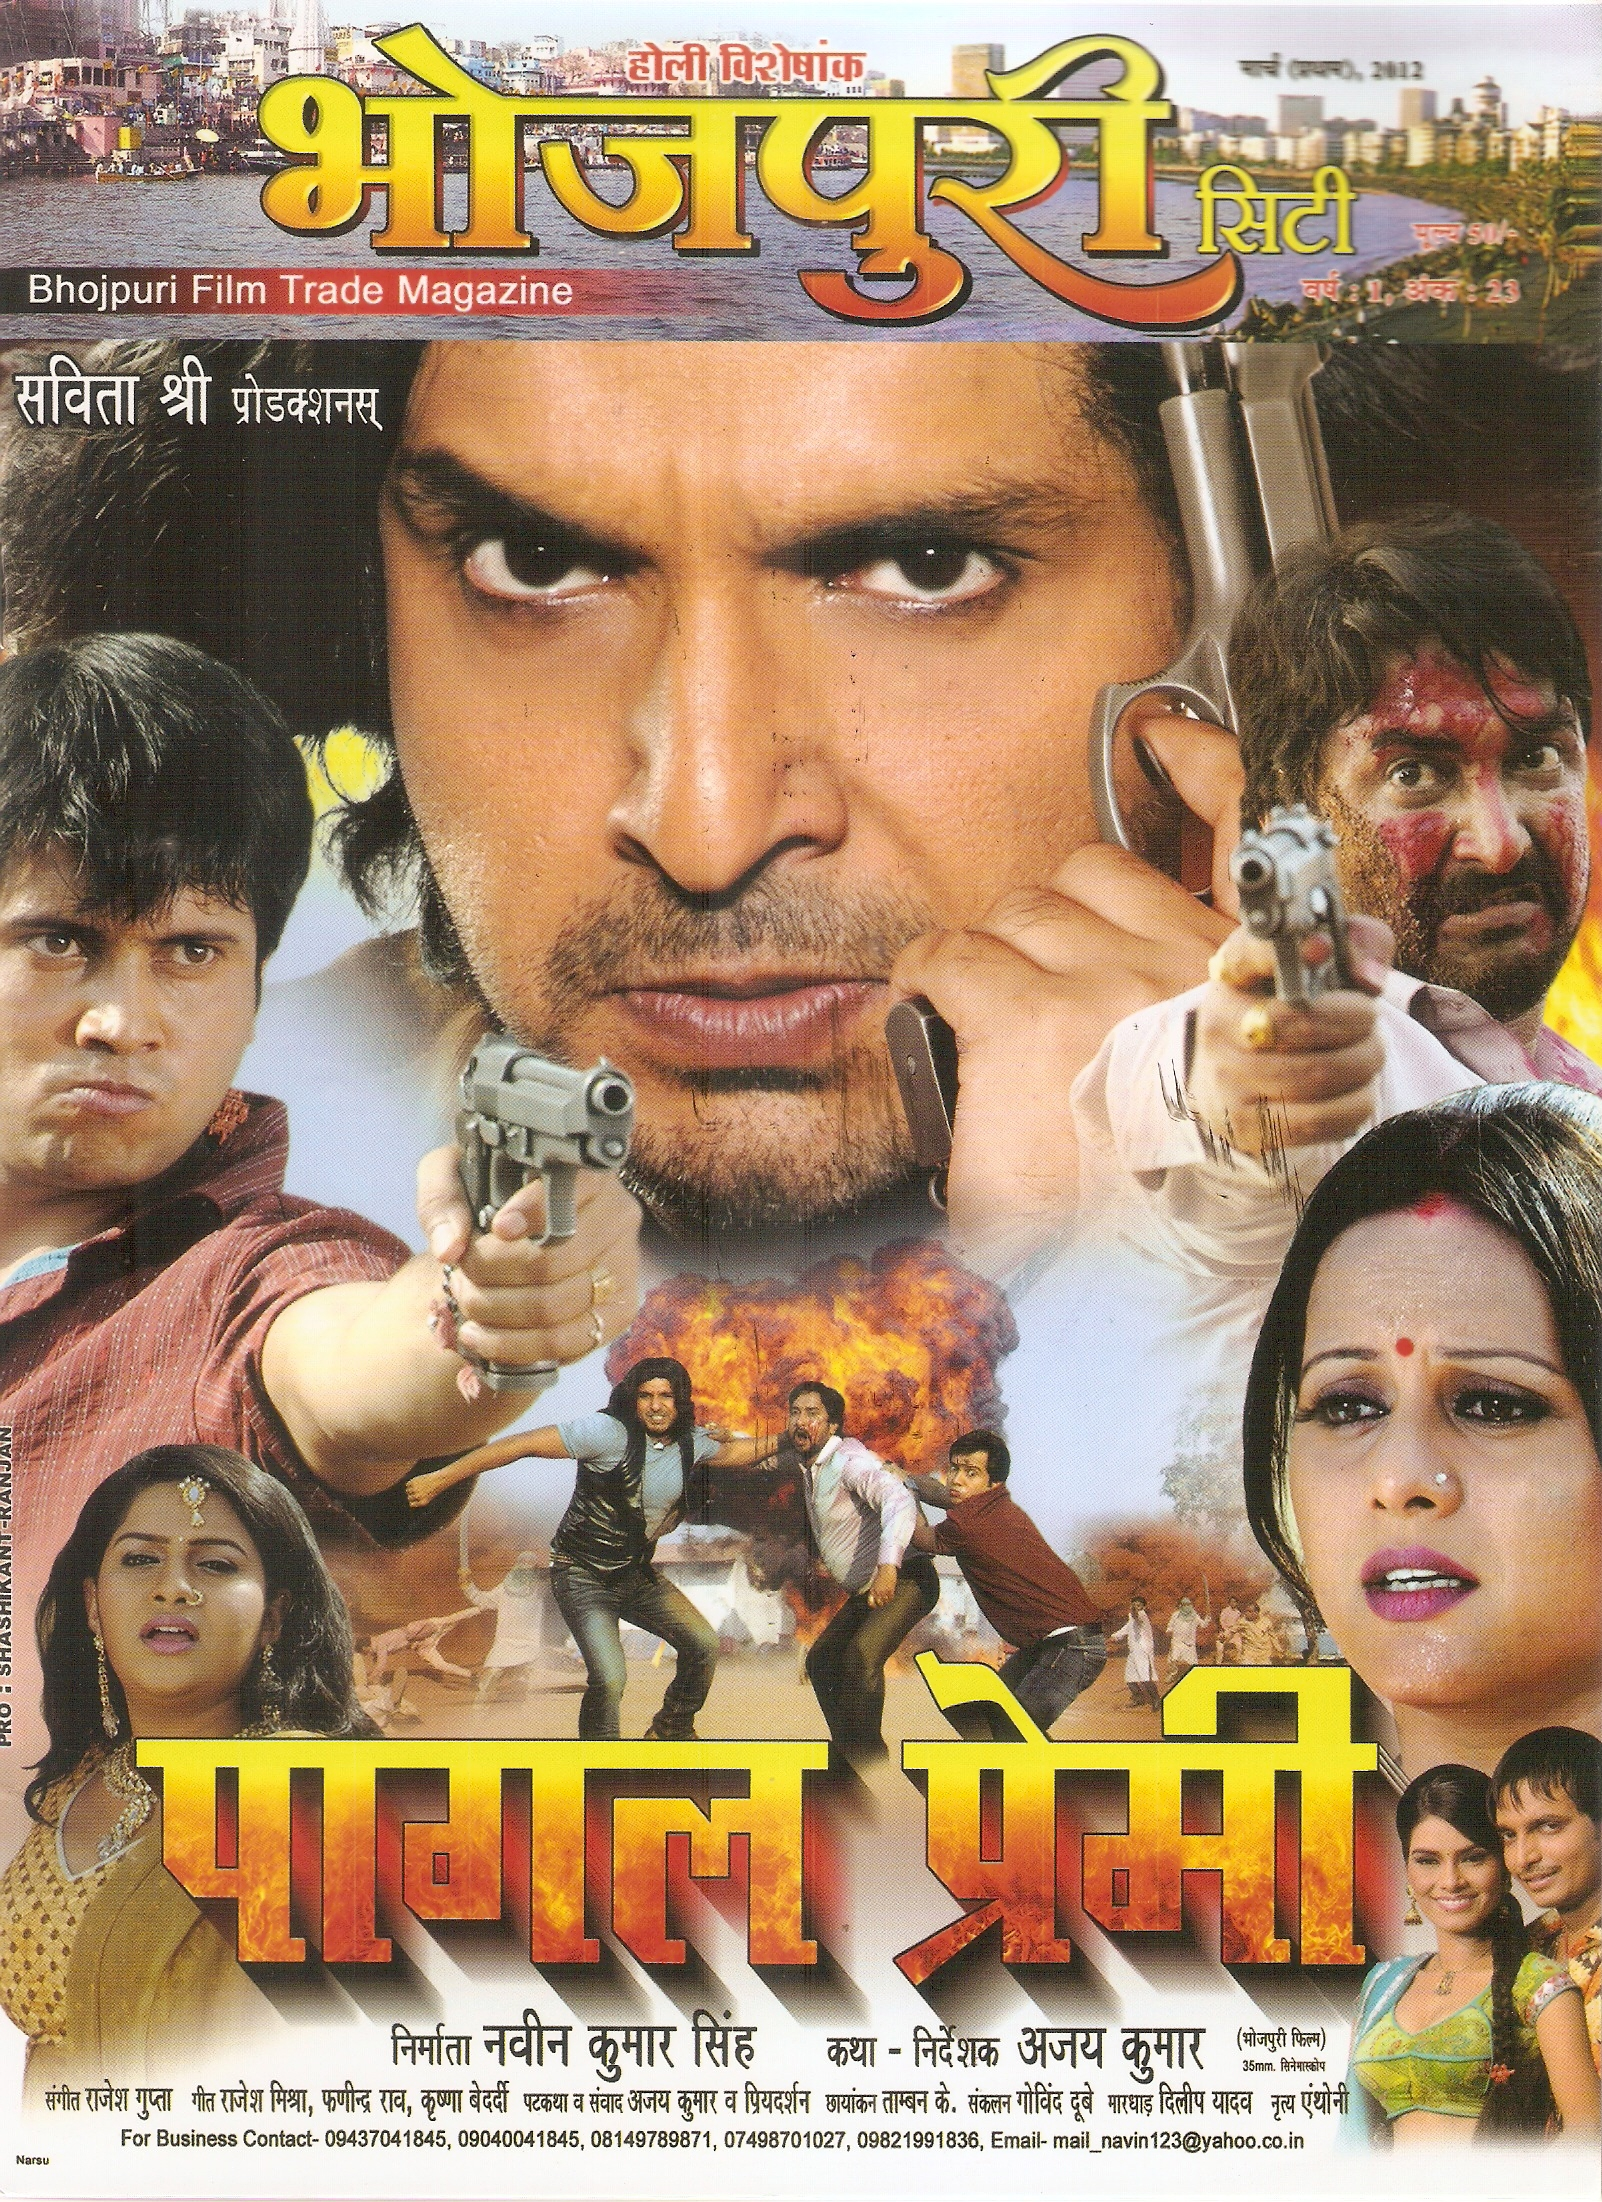 Bhojpuri Film   VIDUR s Blog It is sad that Bhojpuri is spoken by almost 22   24 crore people living in  various parts of the world still Bhojpuri film industry is yet to get its  due